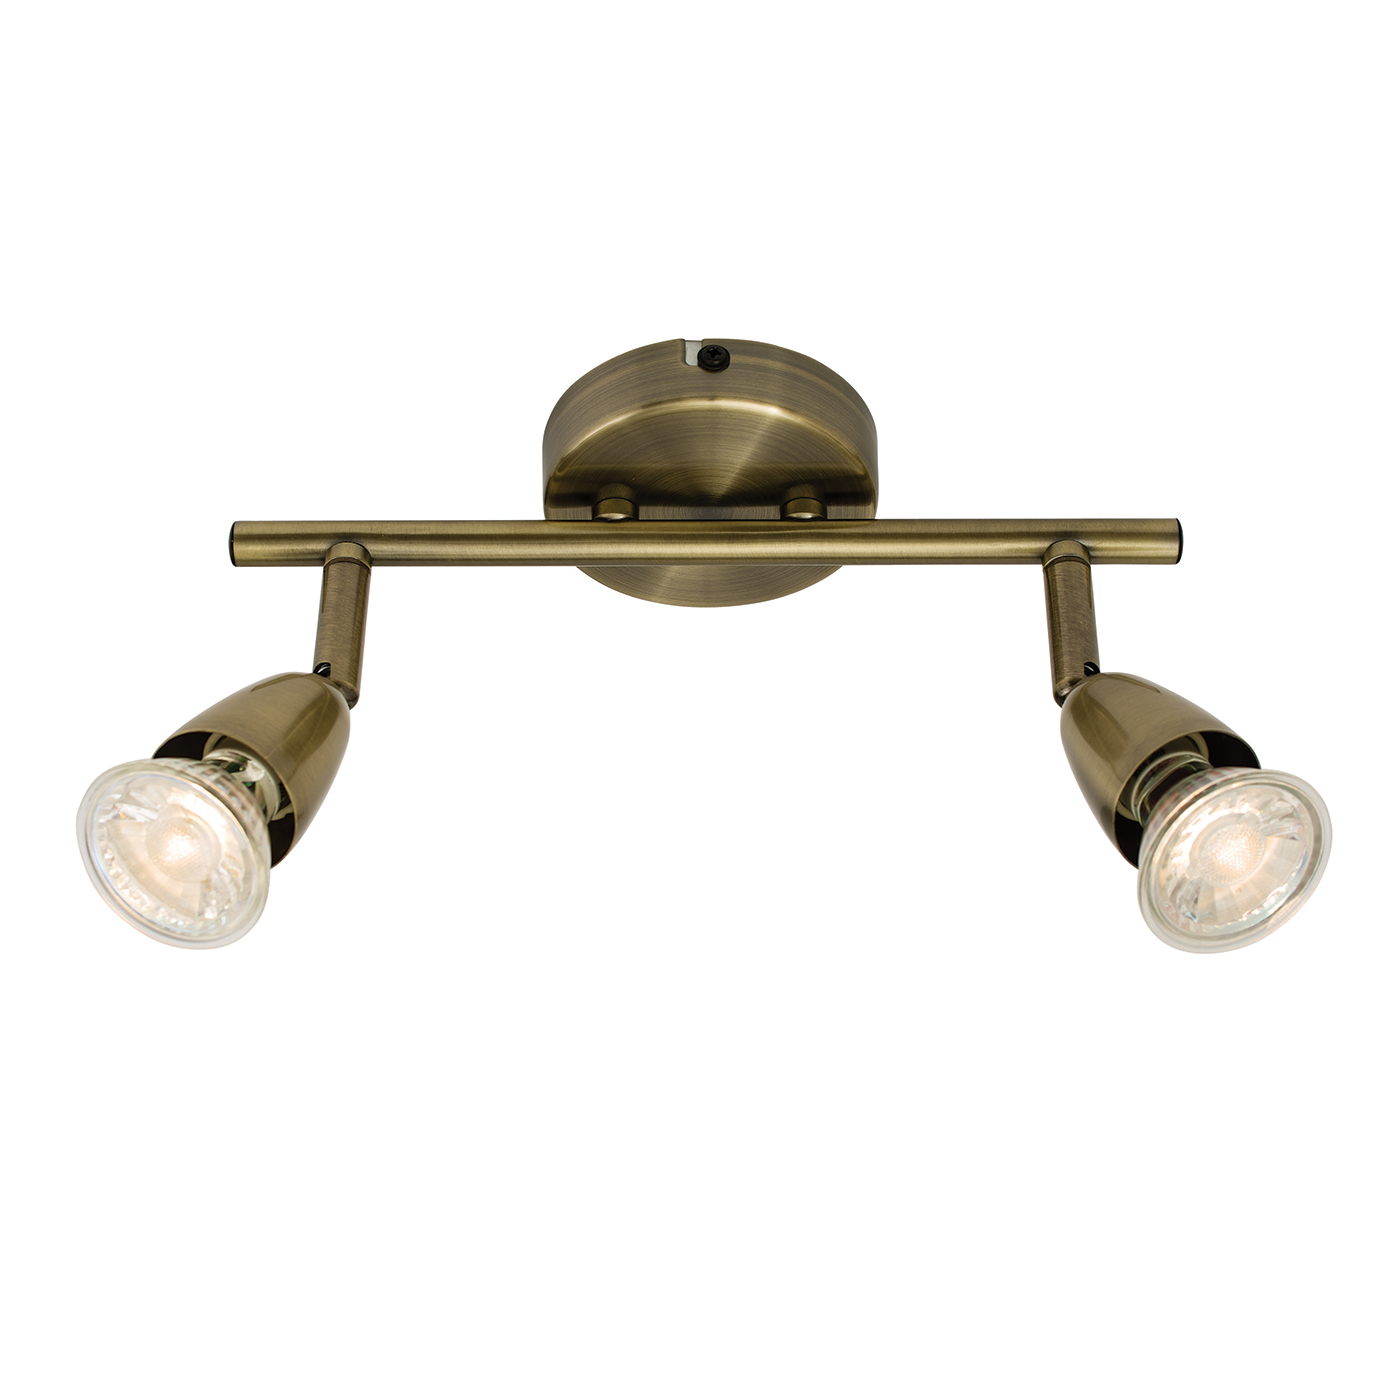 Endon Amalfi ceiling spotlight bar 2x 50W Antique brass effect plate Thumbnail 1